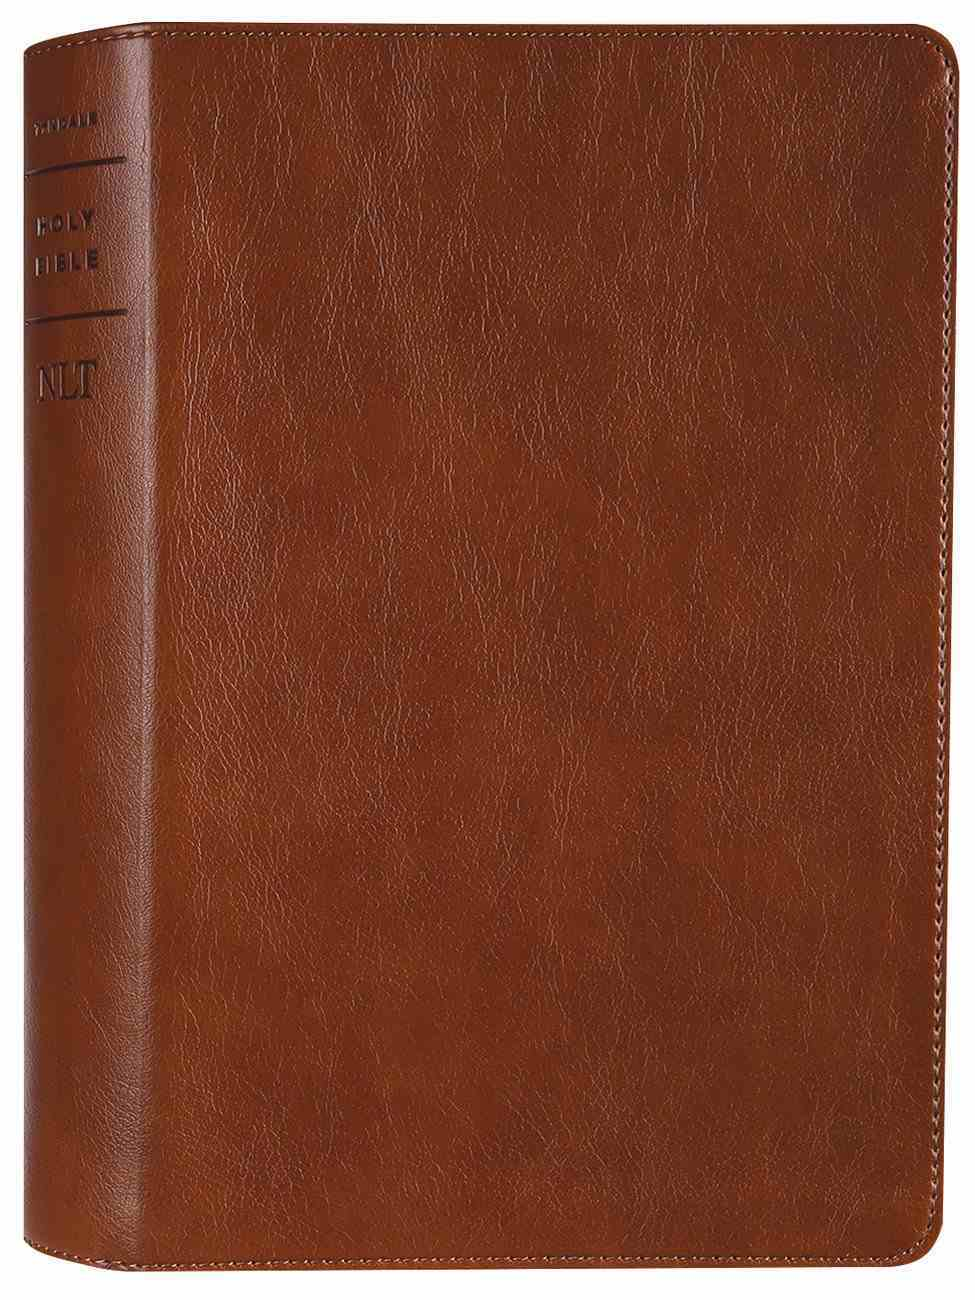 NLT Personal Size Giant Print Bible Filament Enabled Edition Rustic Brown (Red Letter Edition) Imitation Leather